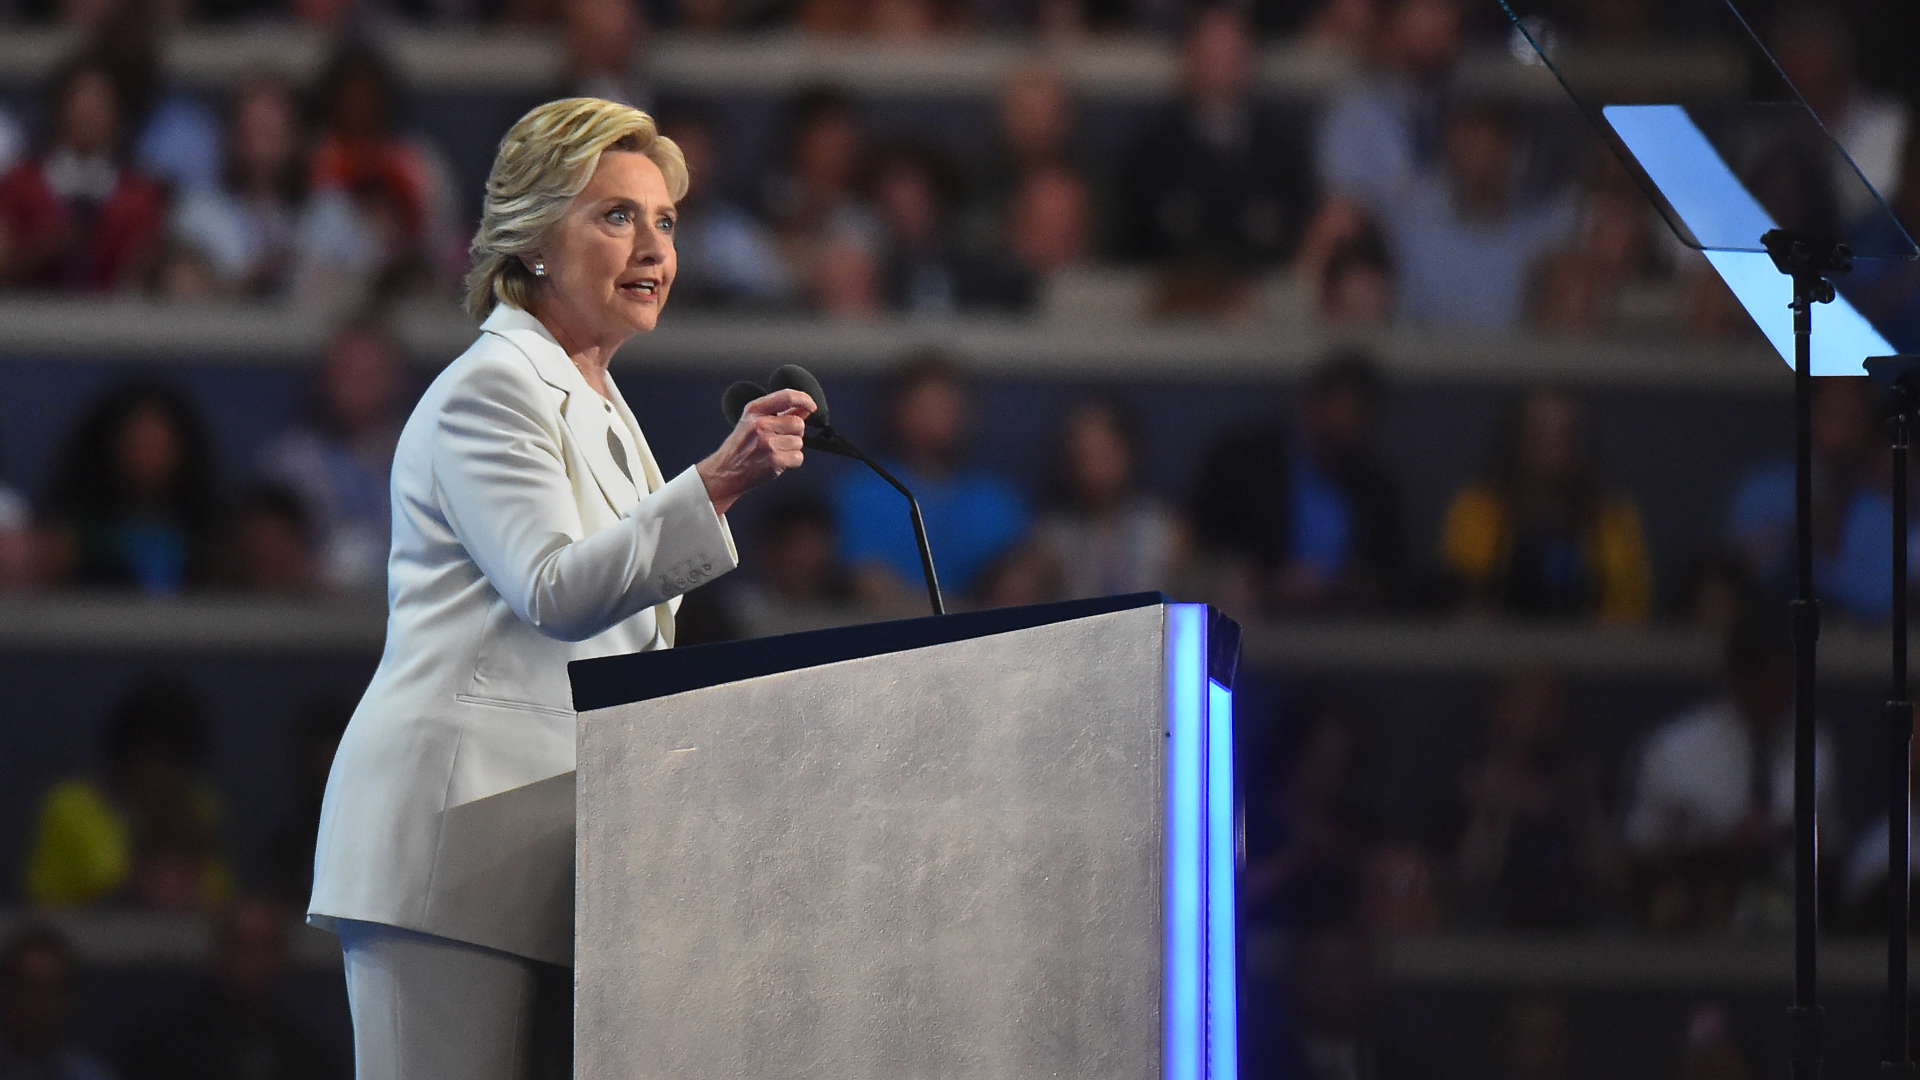 Clinton offers an optimistic vision for the future